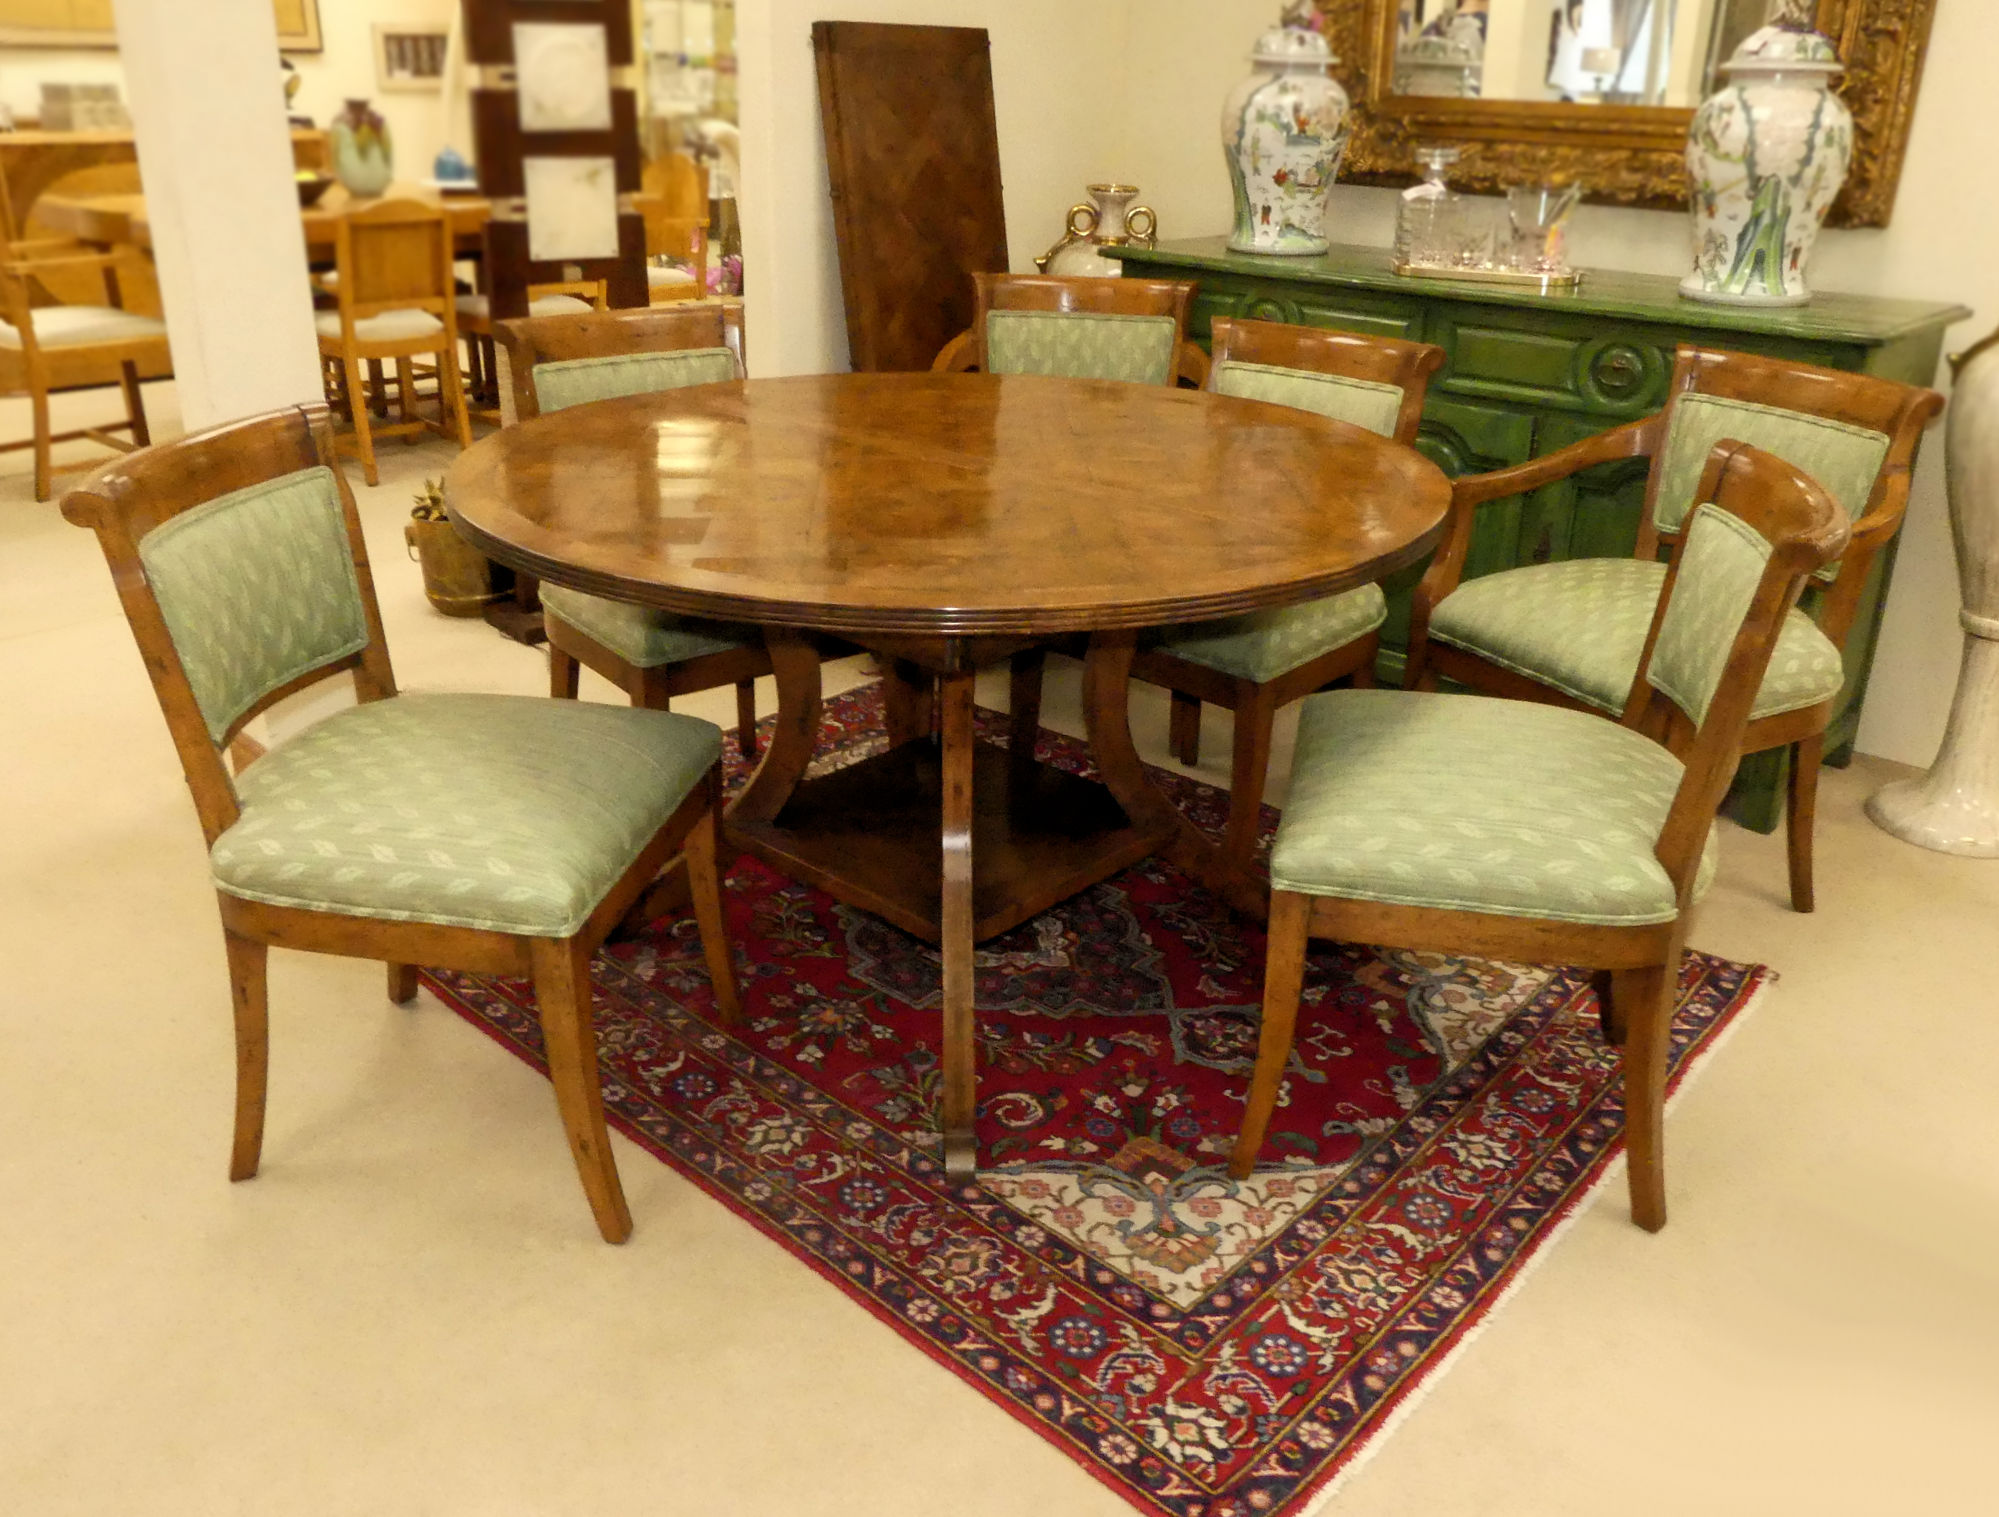 SOLD Guy Chaddock 7-Piece Dining Set